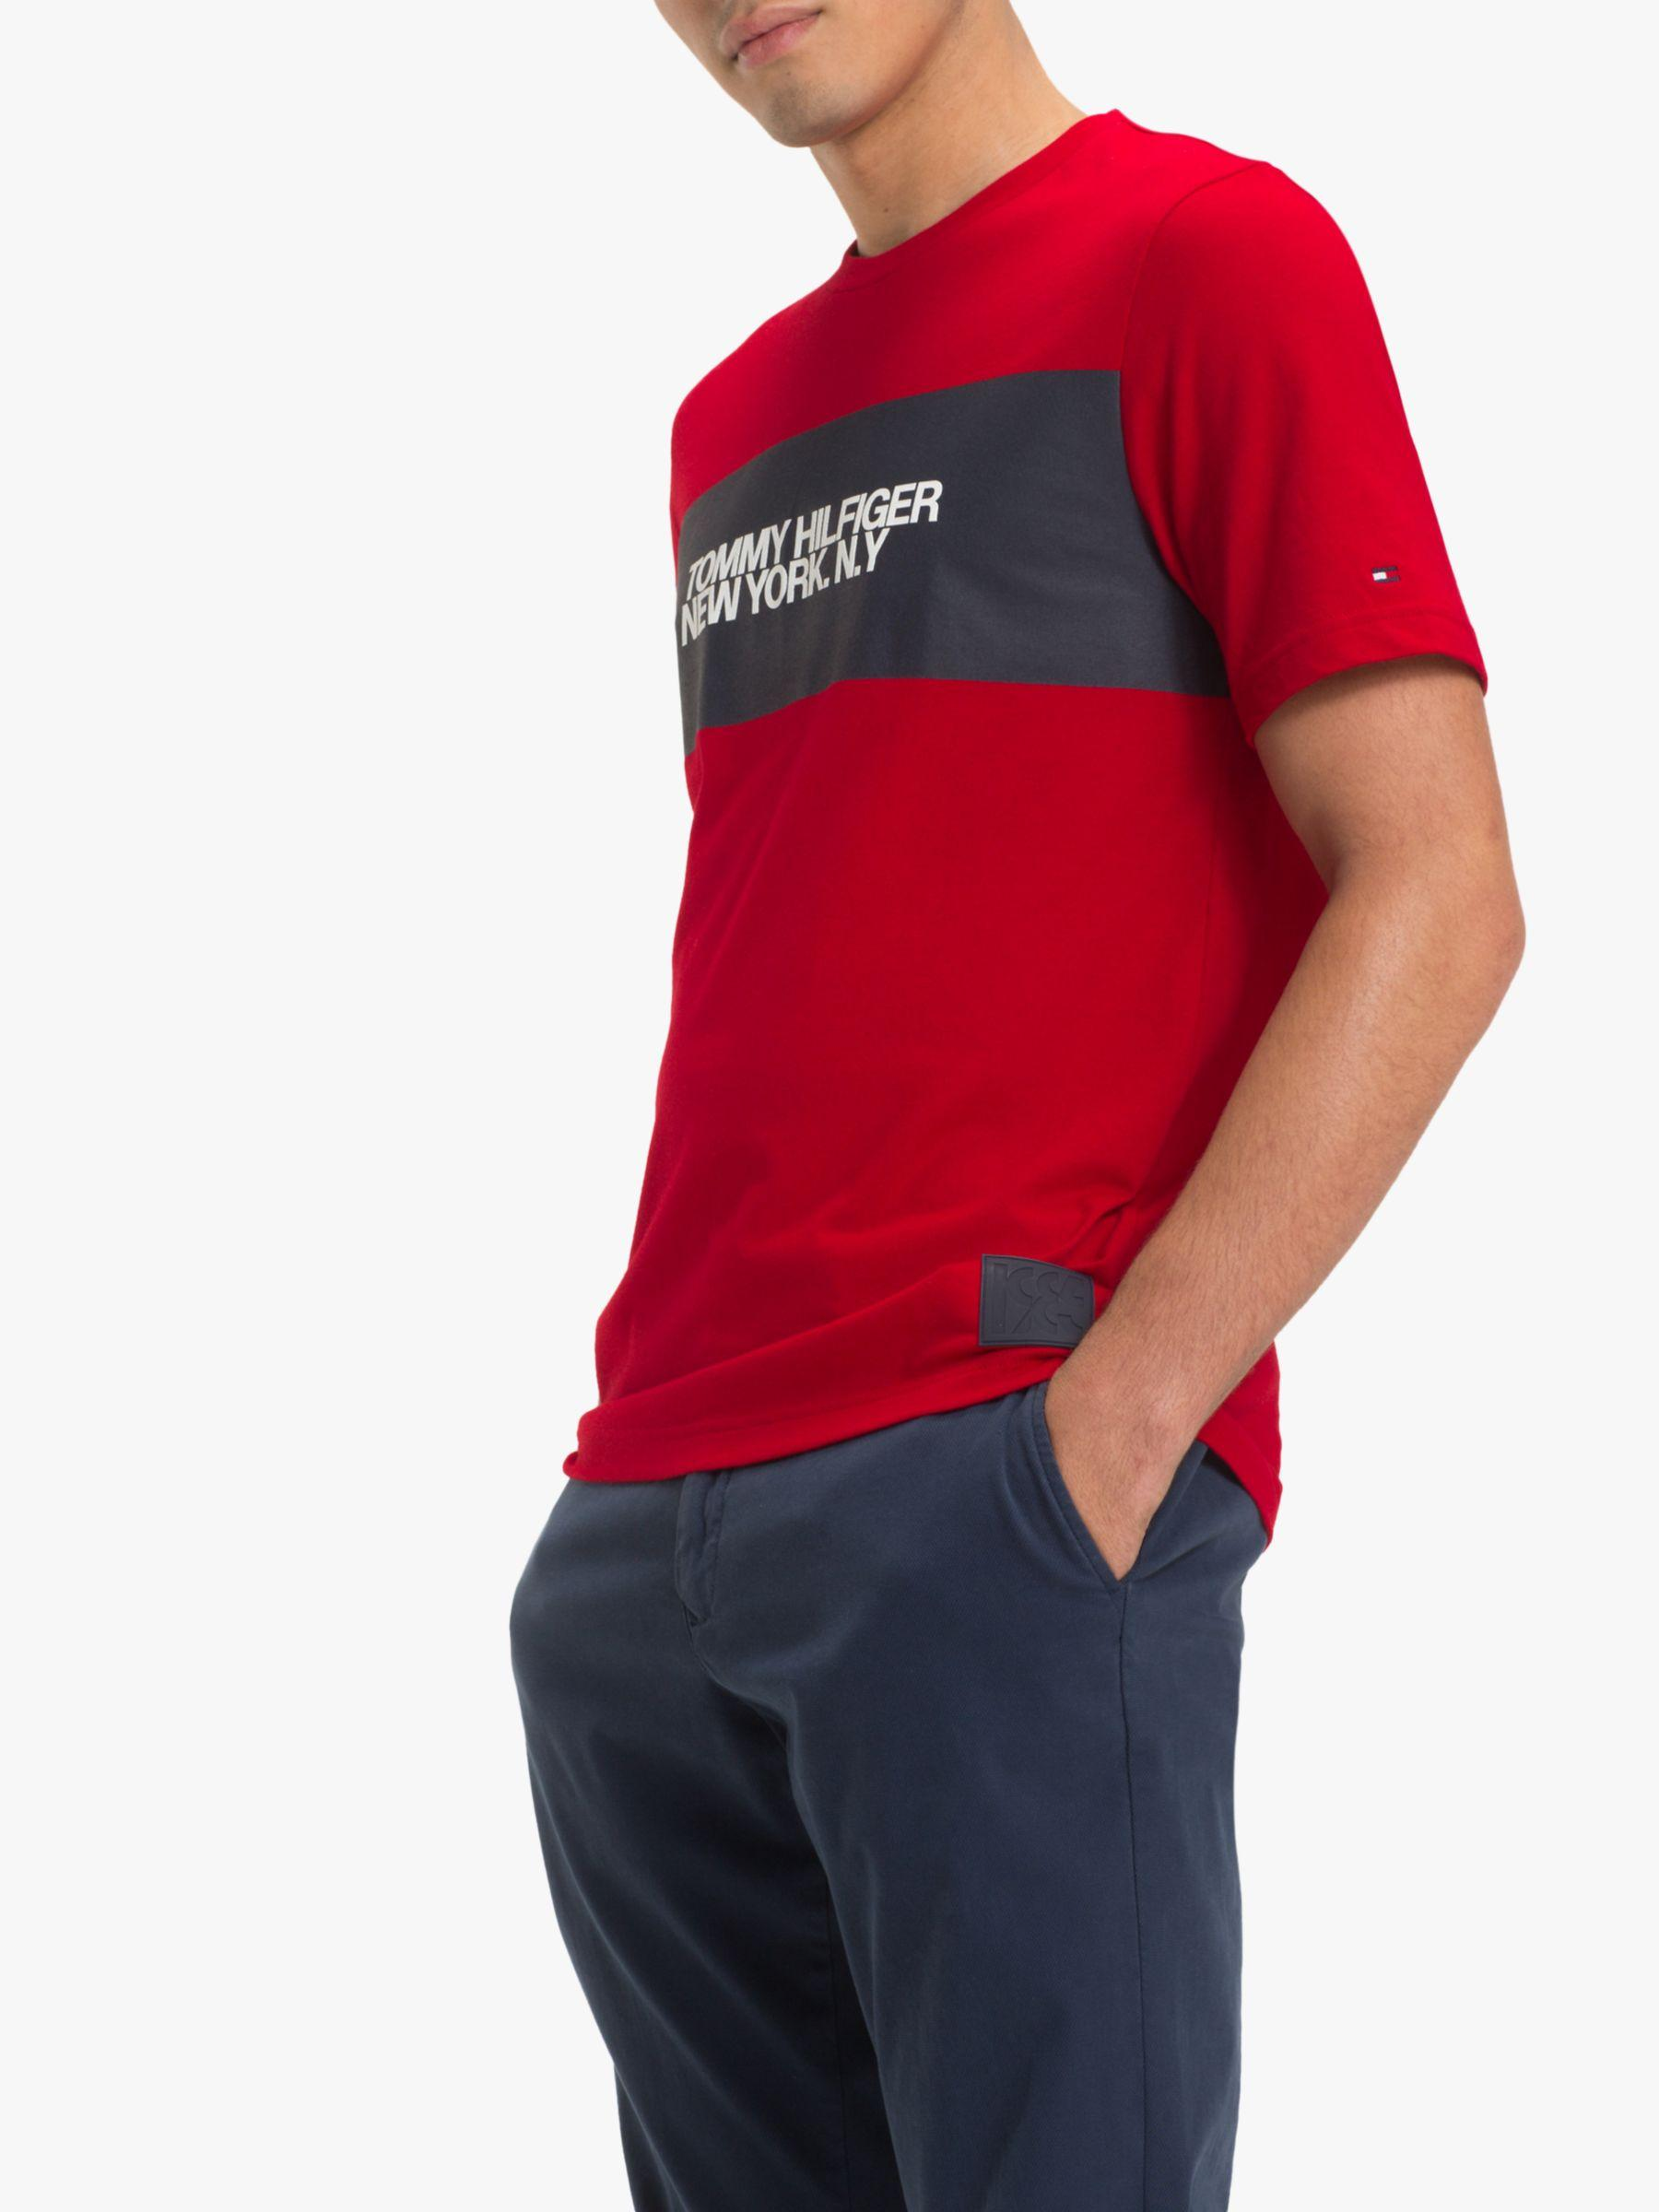 40269c6b Tommy Hilfiger Big Scale Logo T-shirt in Red for Men - Lyst